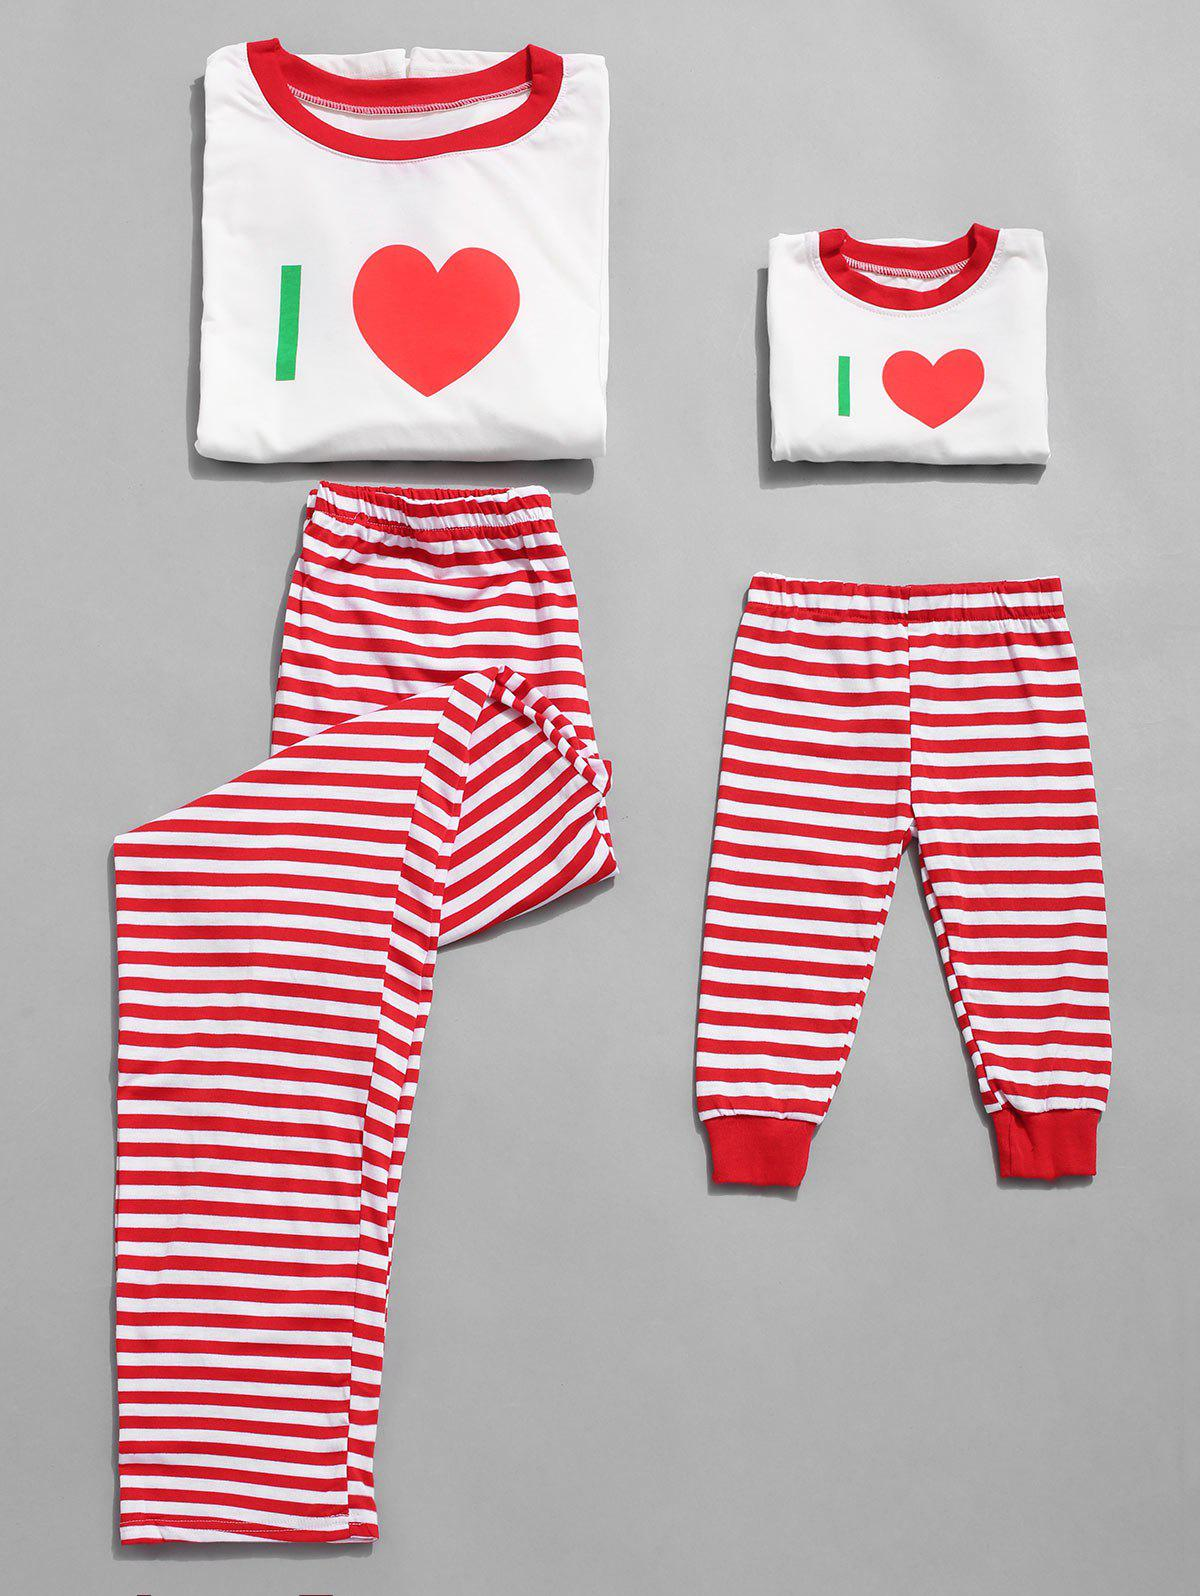 Shops Letter Print Plus Size Christmas Pajama Set for Mom Kids